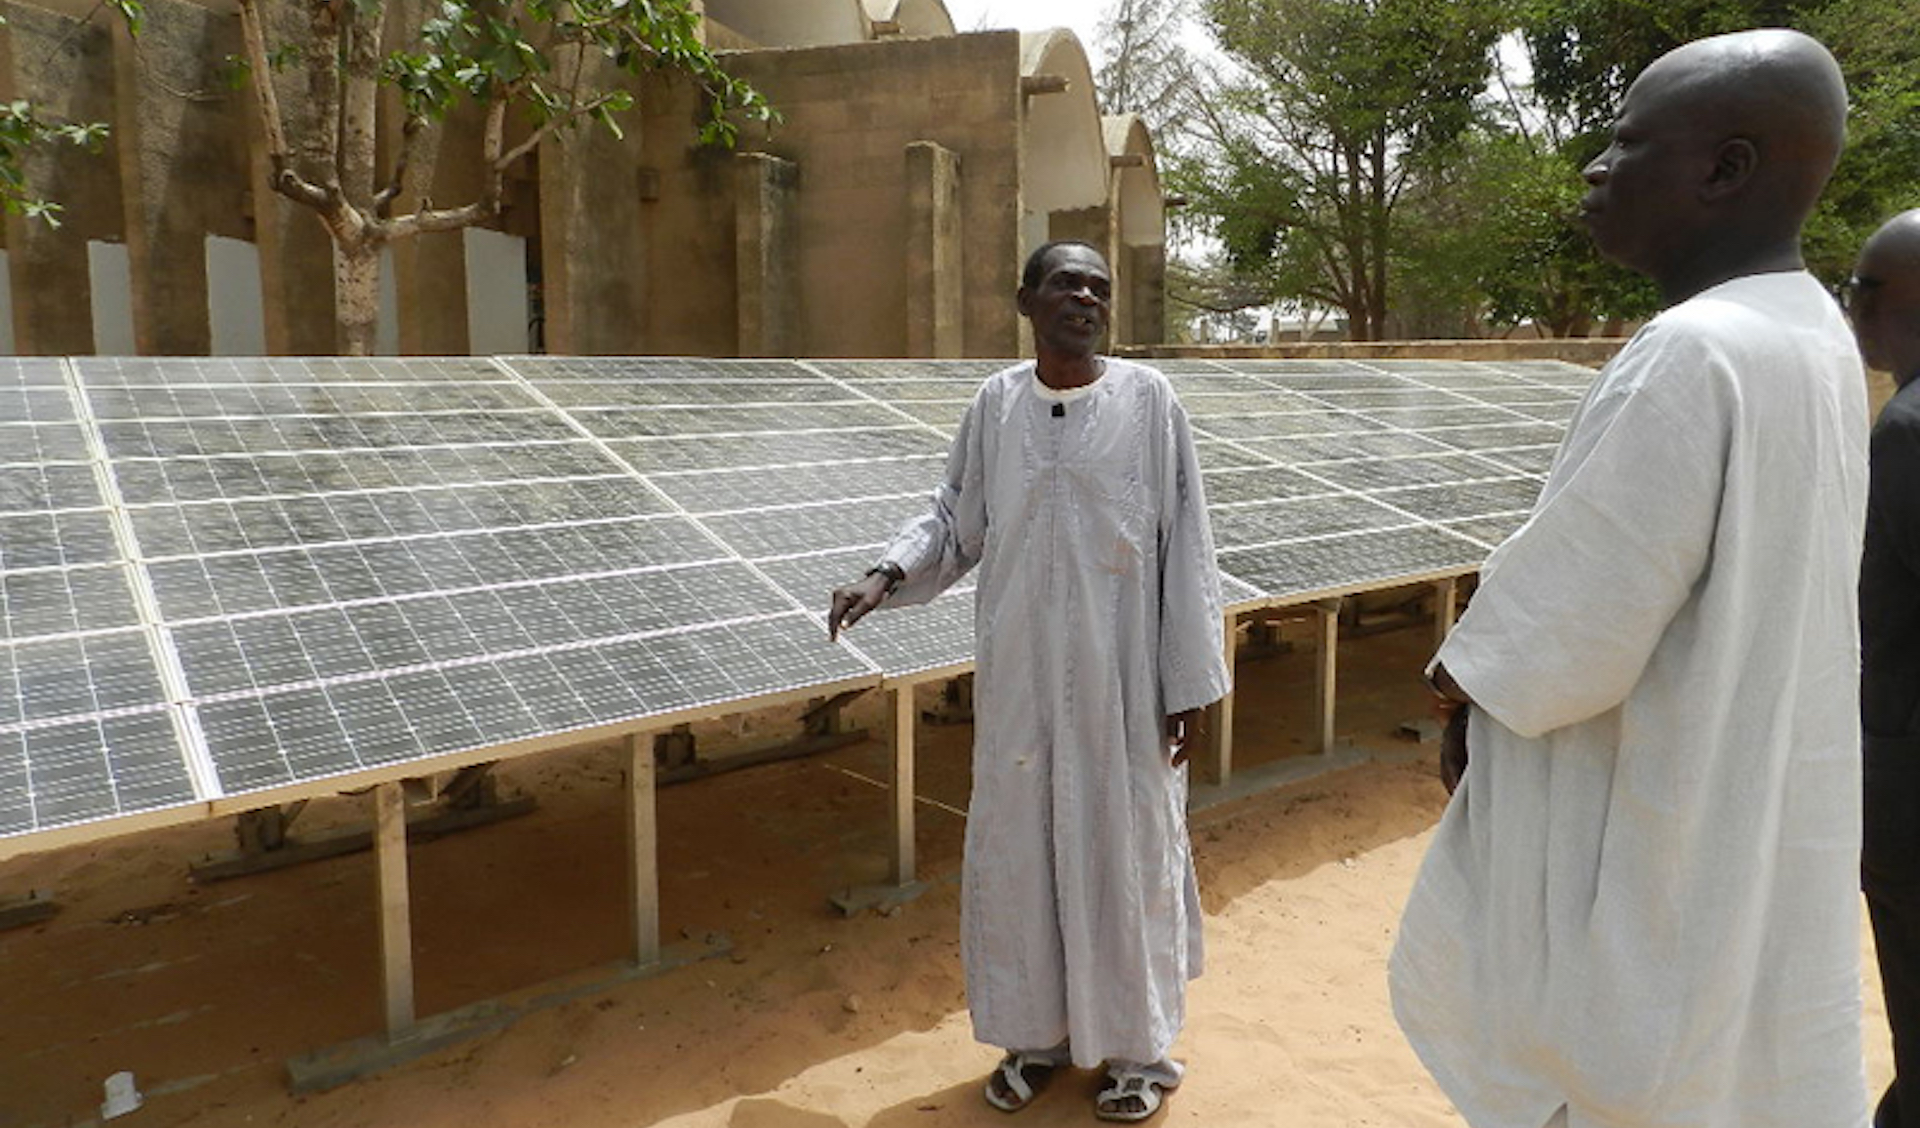 Two men in white robes standing next to a row of solar panels in Dakar, Senegal